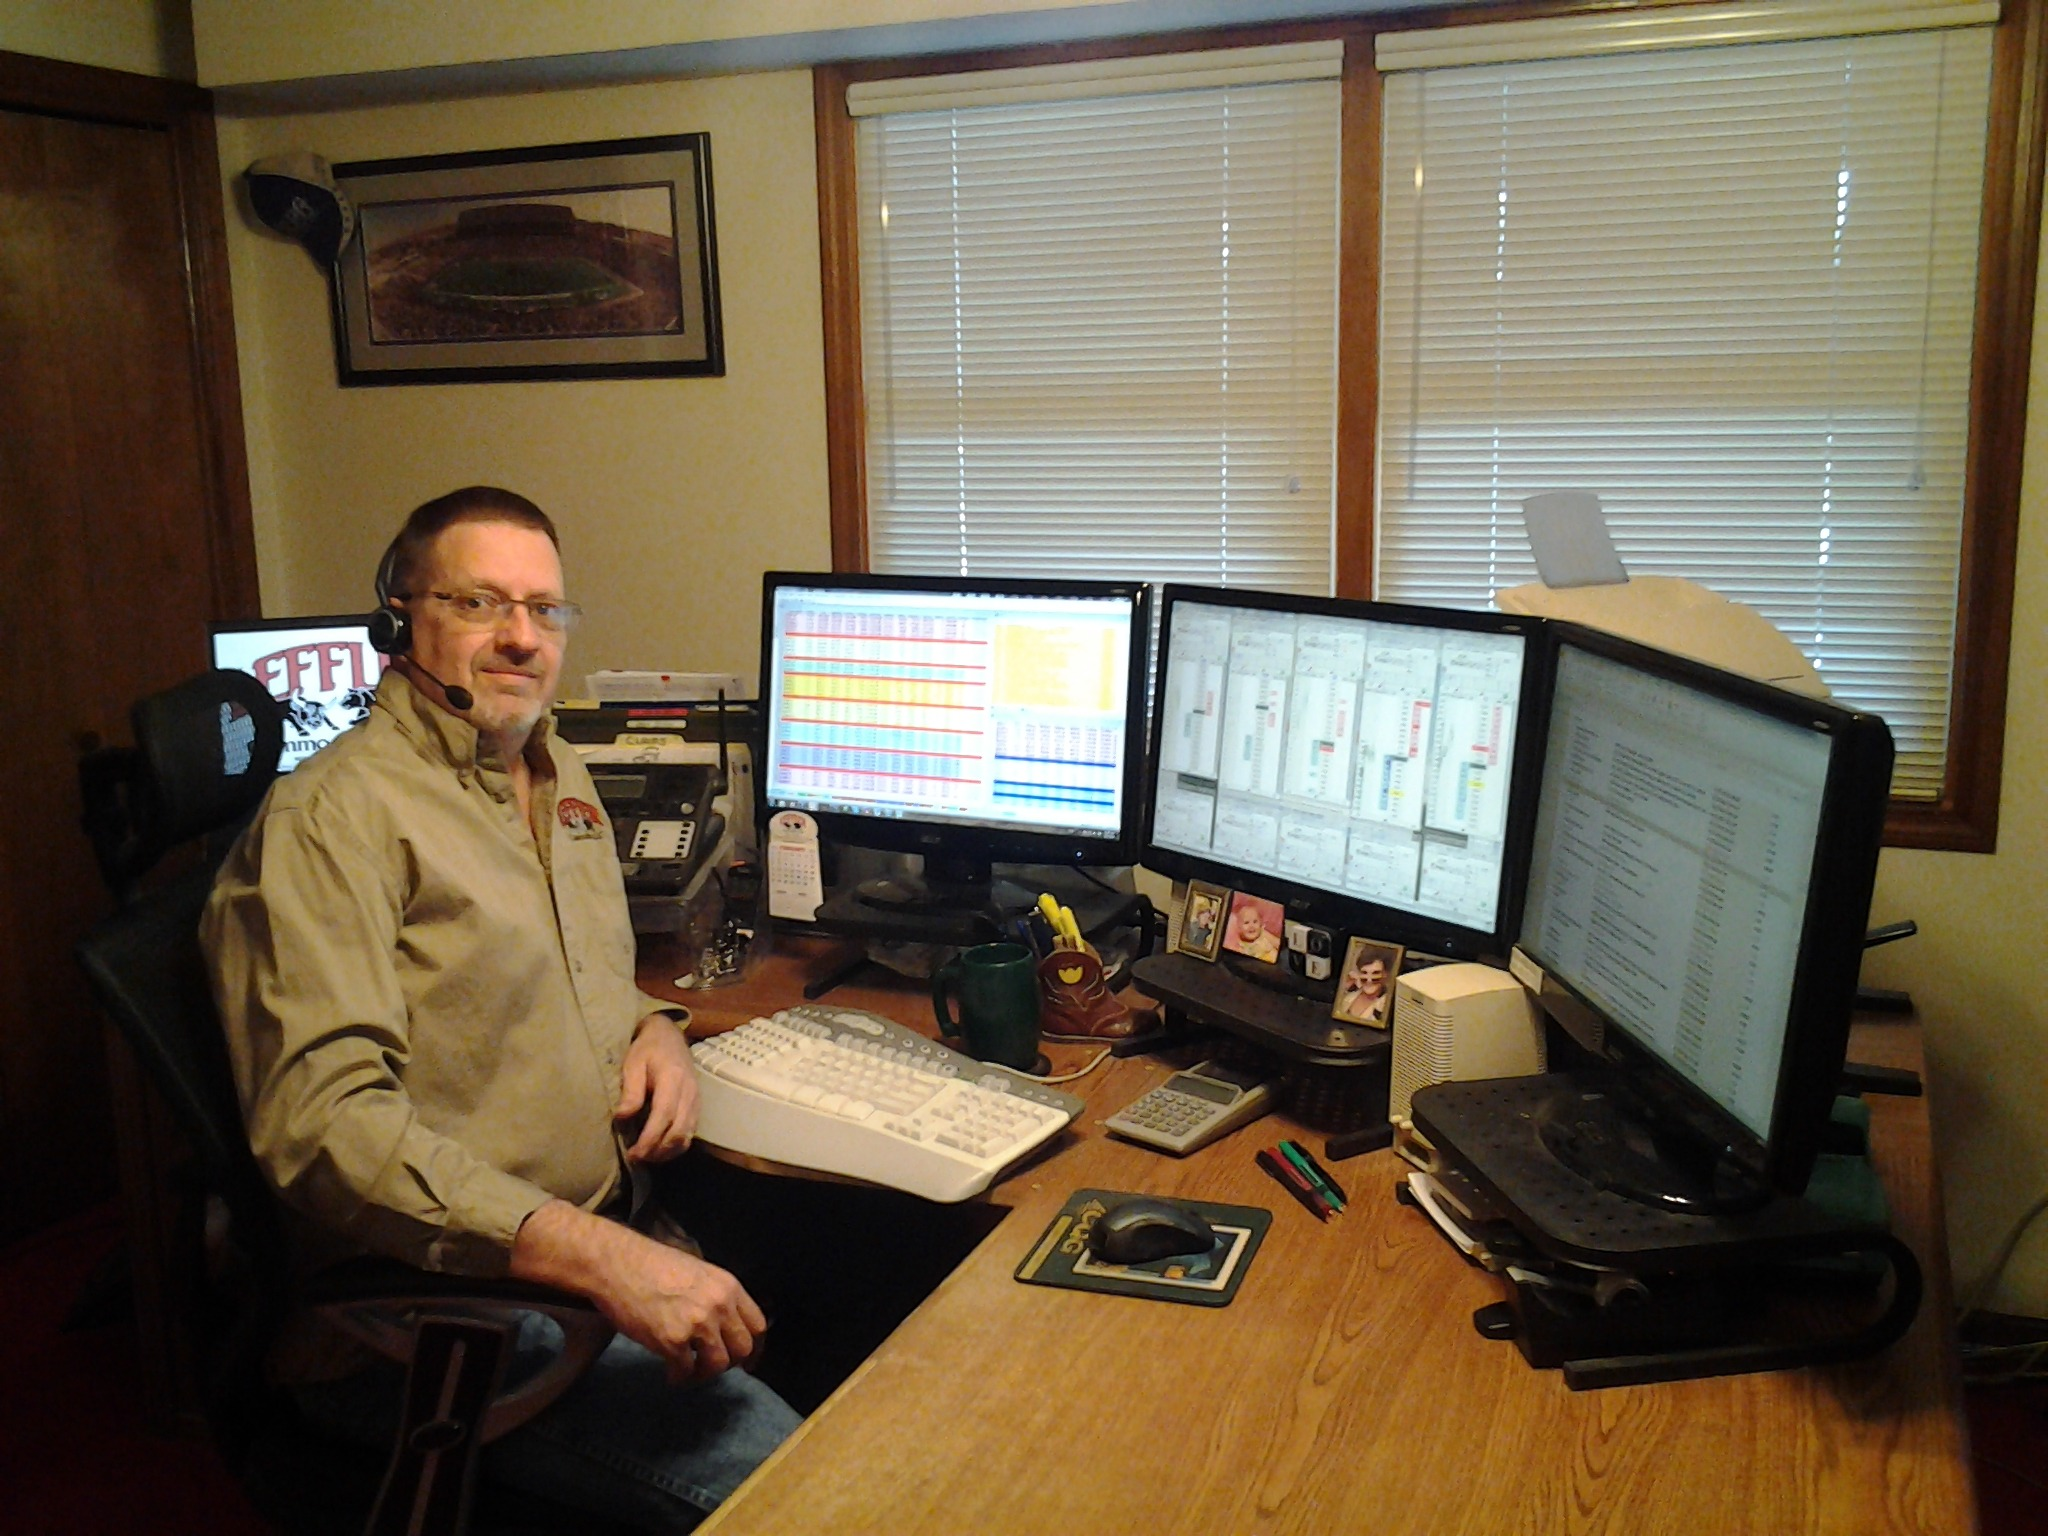 Tom Leffler, Leffler Commodities and Ag Consulting, Augusta, has been a commodity broker and agriculture marketing and risk management advisor since 1991. He does daily reports during agriculture programming on six Midwest radio stations.